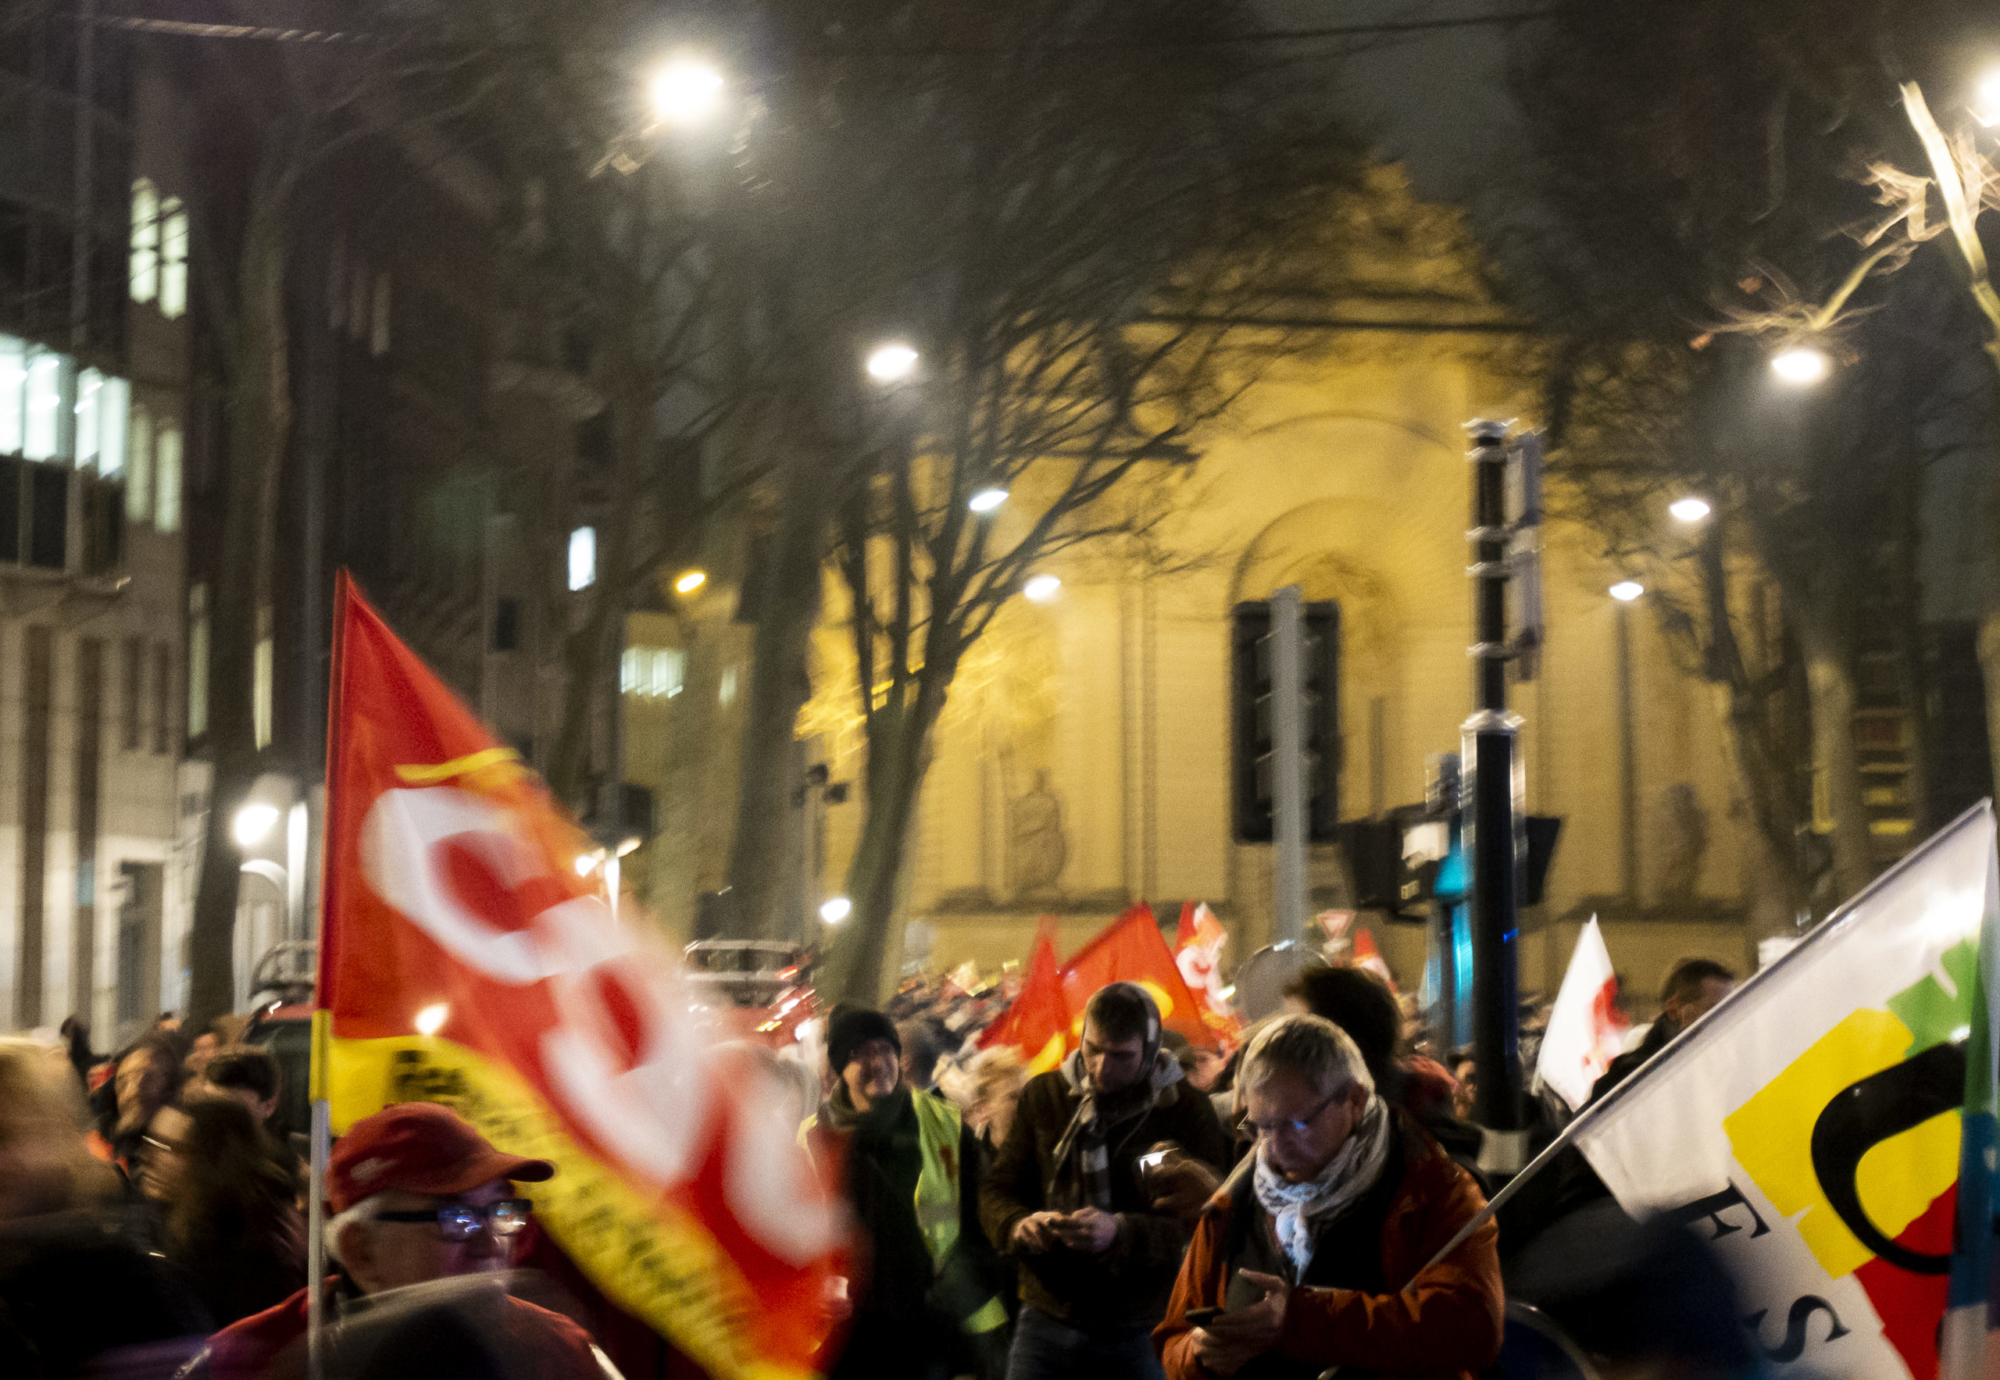 Manif 23 Janvier 1000671 scaled